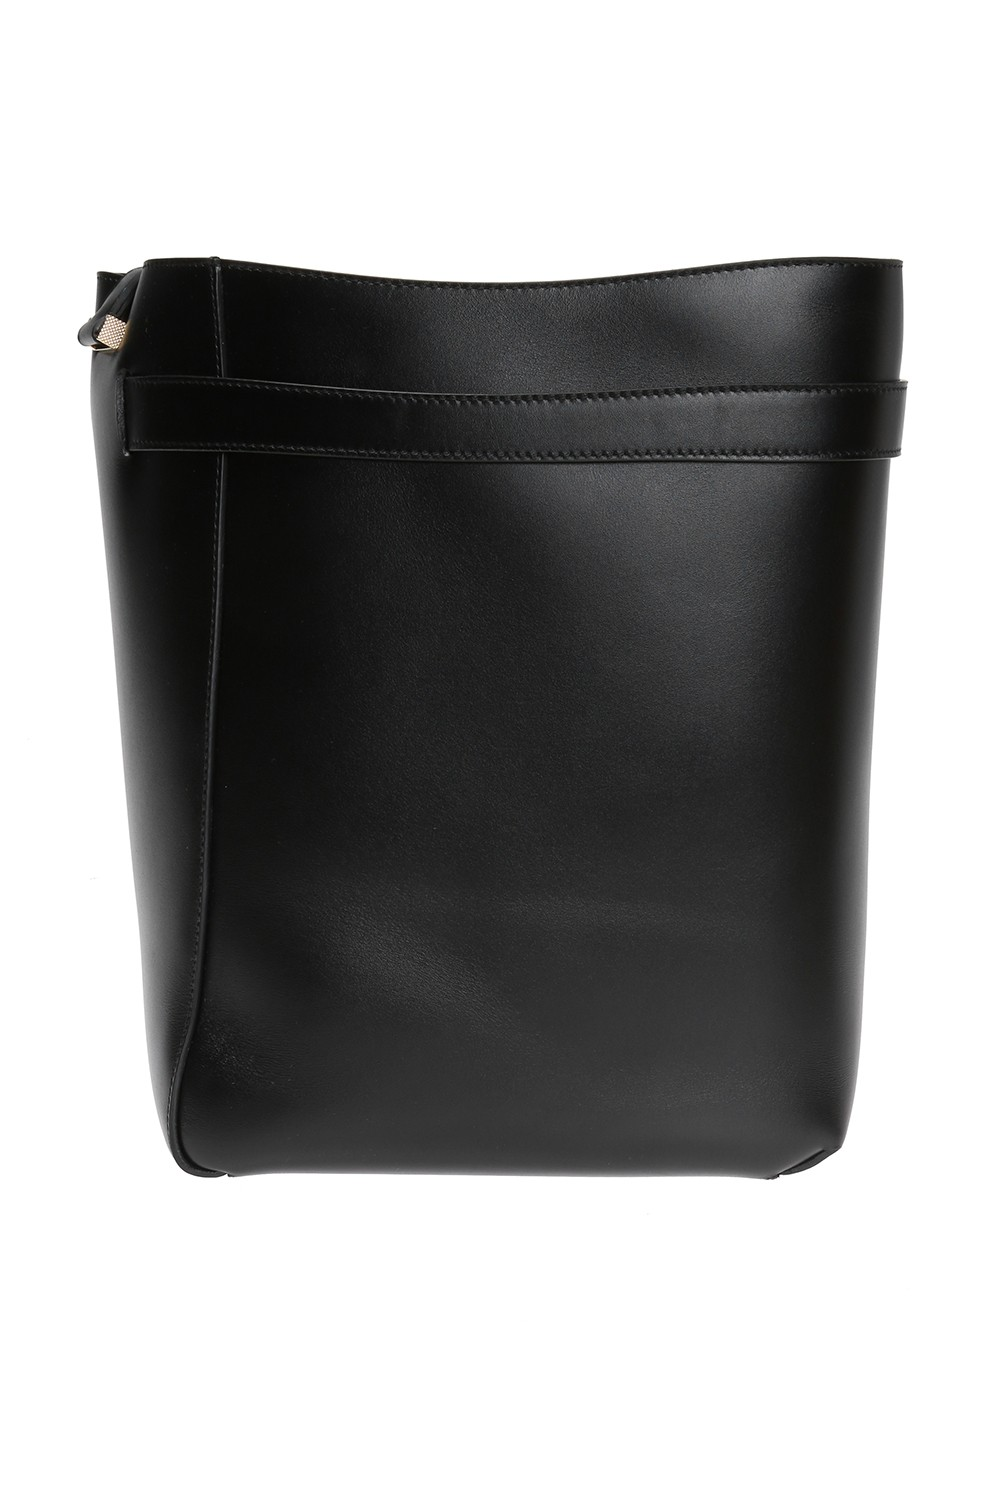 Victoria Beckham 'Twin Bucket' shoulder bag